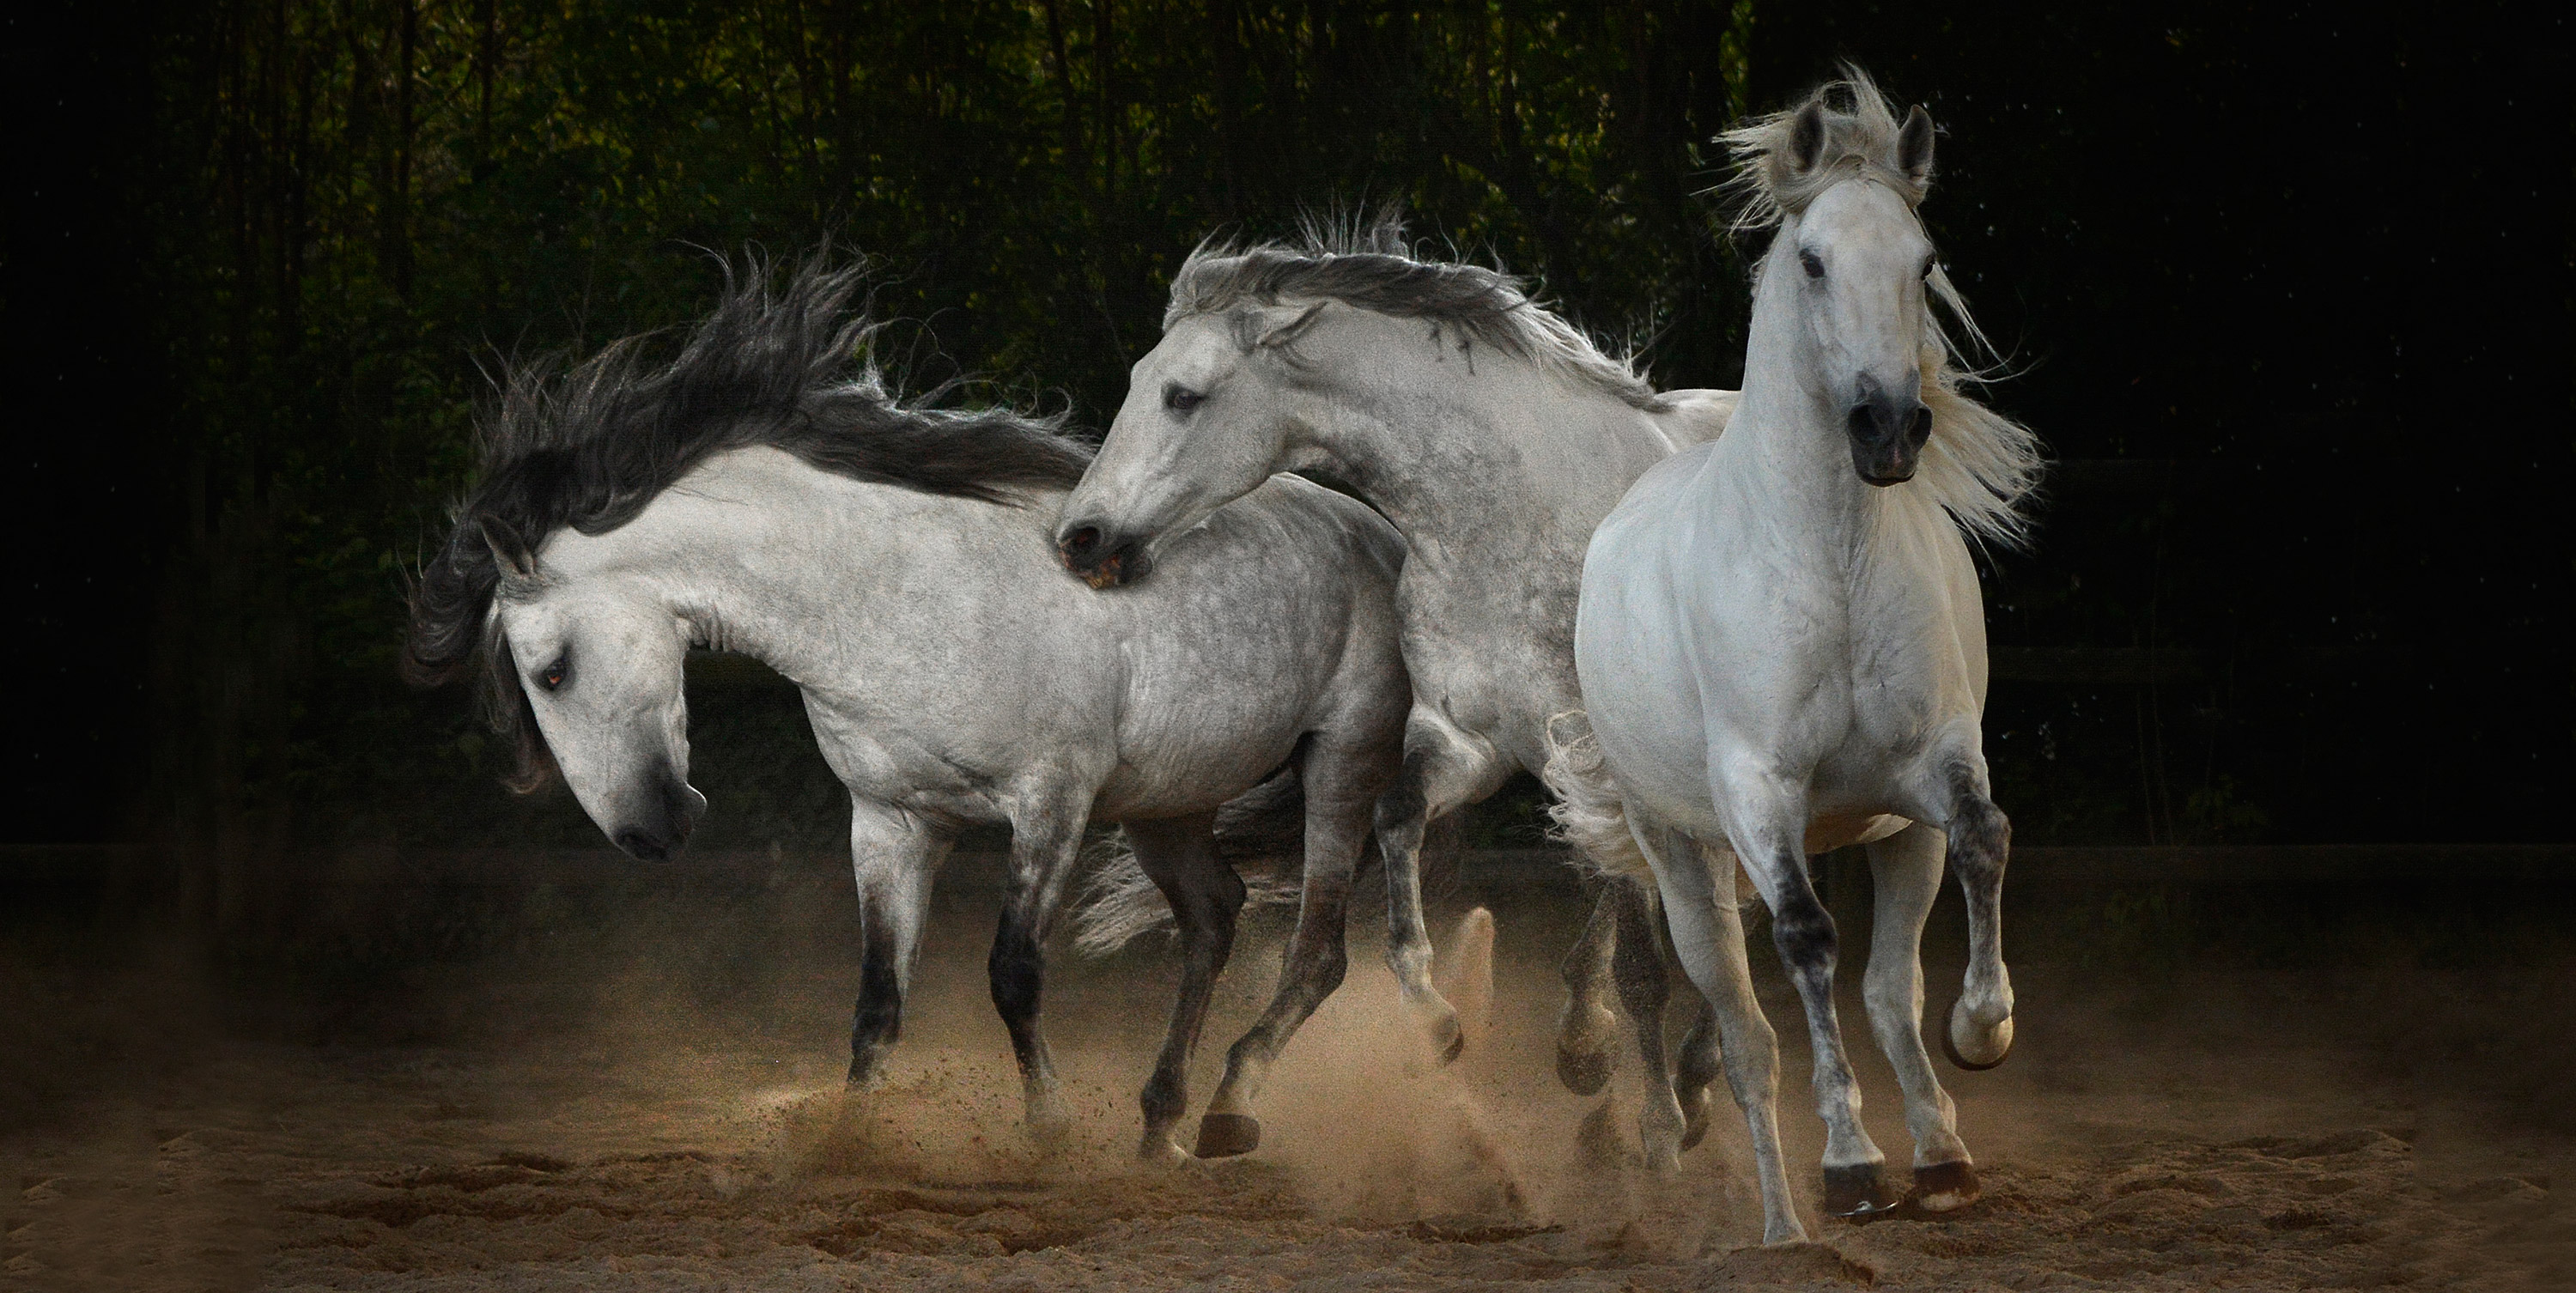 Professional Wild Horse Photography